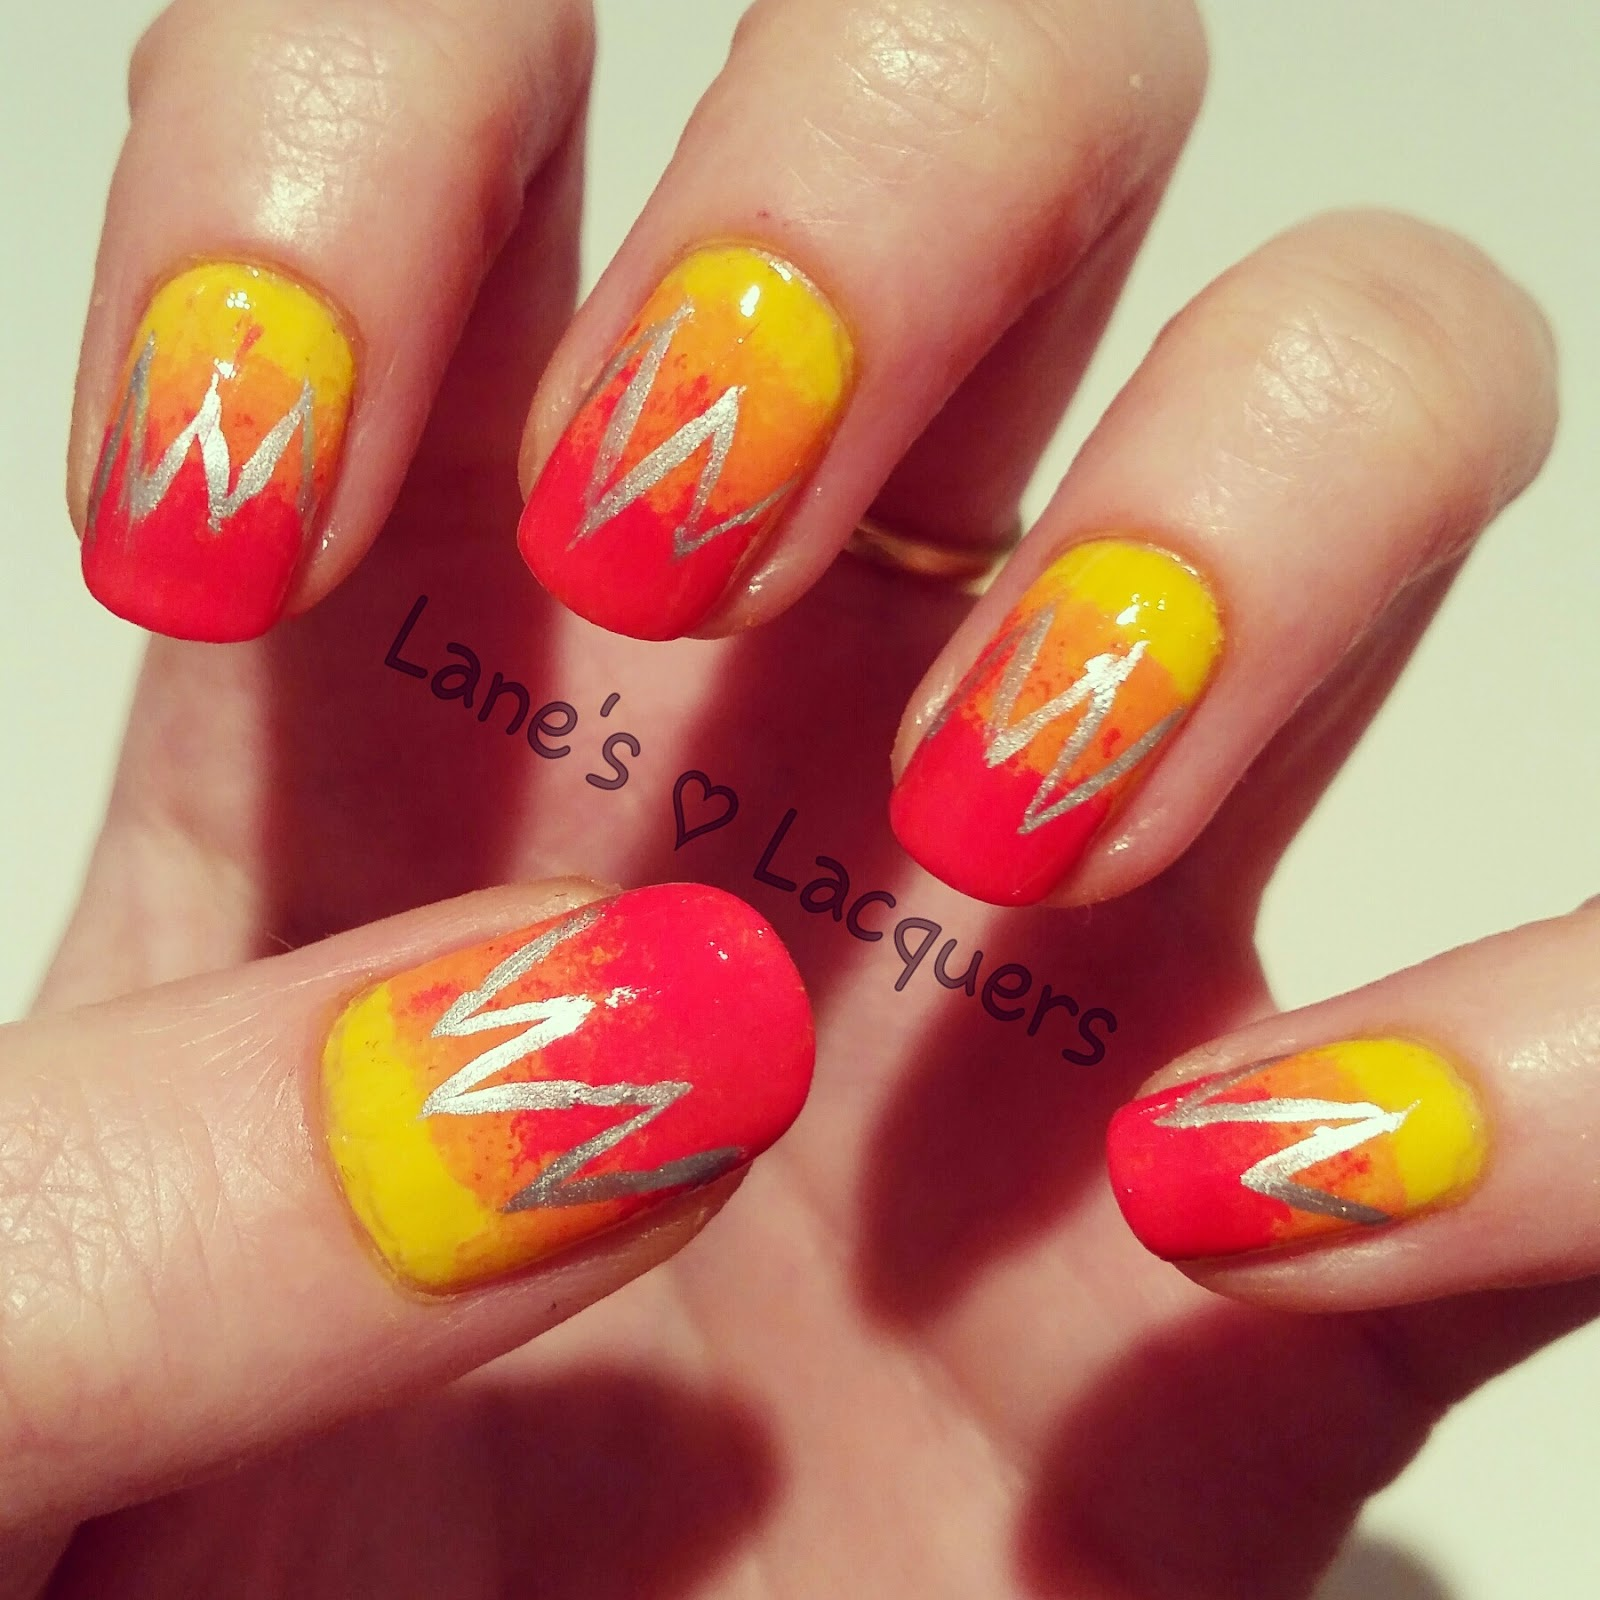 barry-m-red-yellow-orange-ombre-explosion-nail-art